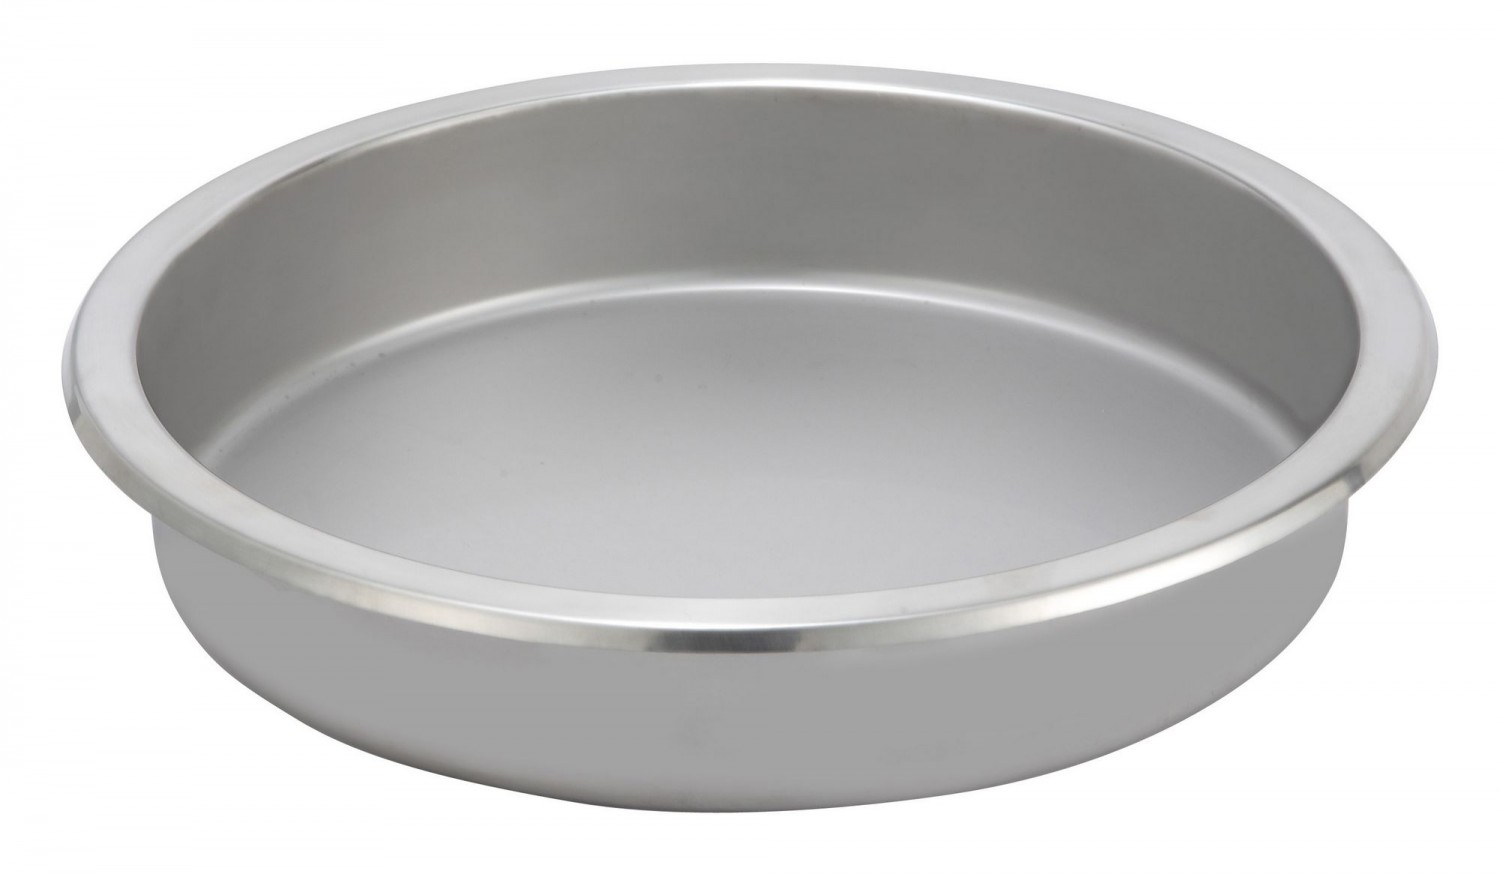 Winco 602-FP Round Stainless Steel Food Pan For 103A, 103B, & 602